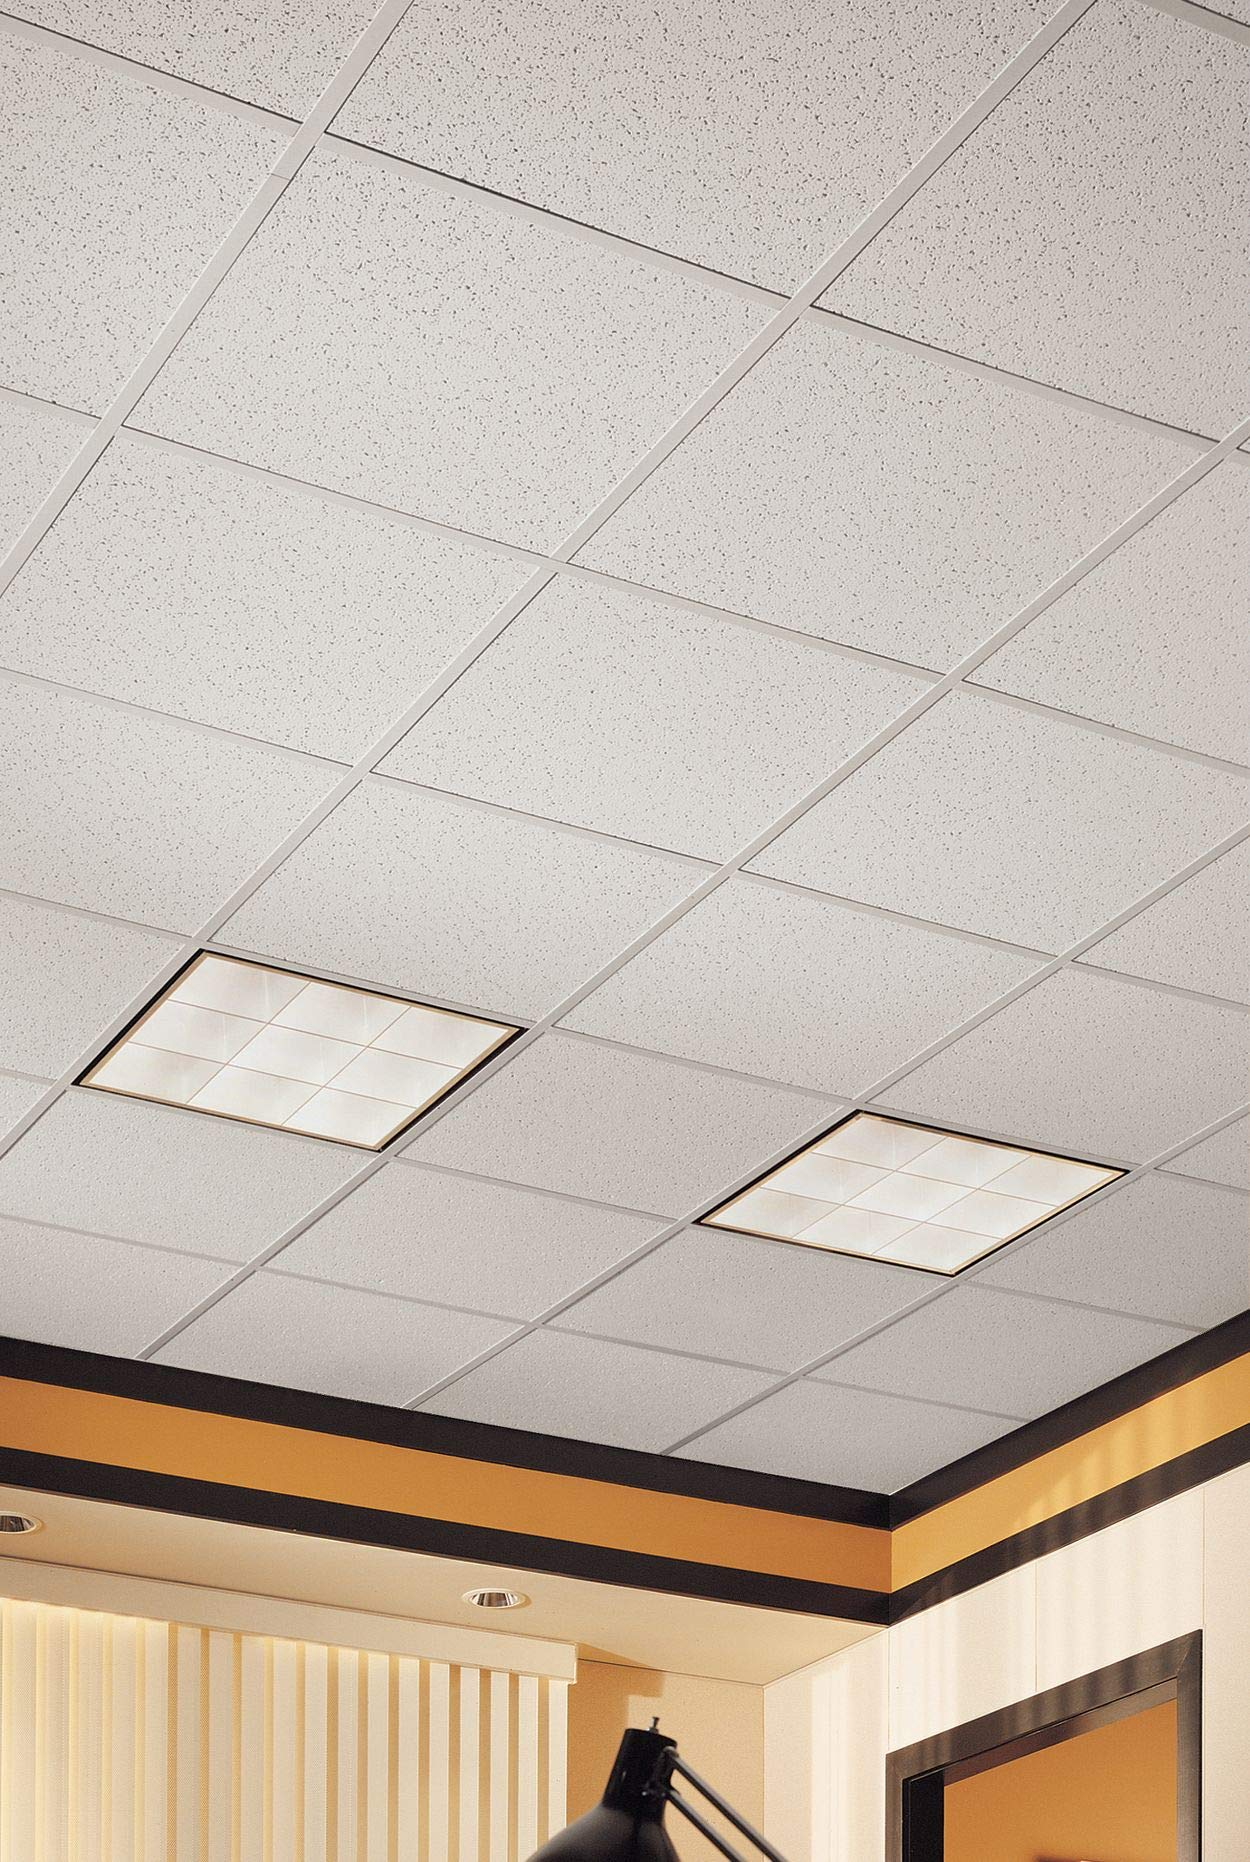 Armstrong Ceiling Tiles; 2x2 Ceiling Tiles - Acoustic Ceilings for Suspended Ceiling Grid; Drop Ceiling Tiles Direct from the Manufacturer; CORTEGA Item 704 - 16 pc White Tegular by Armstrong (Image #5)